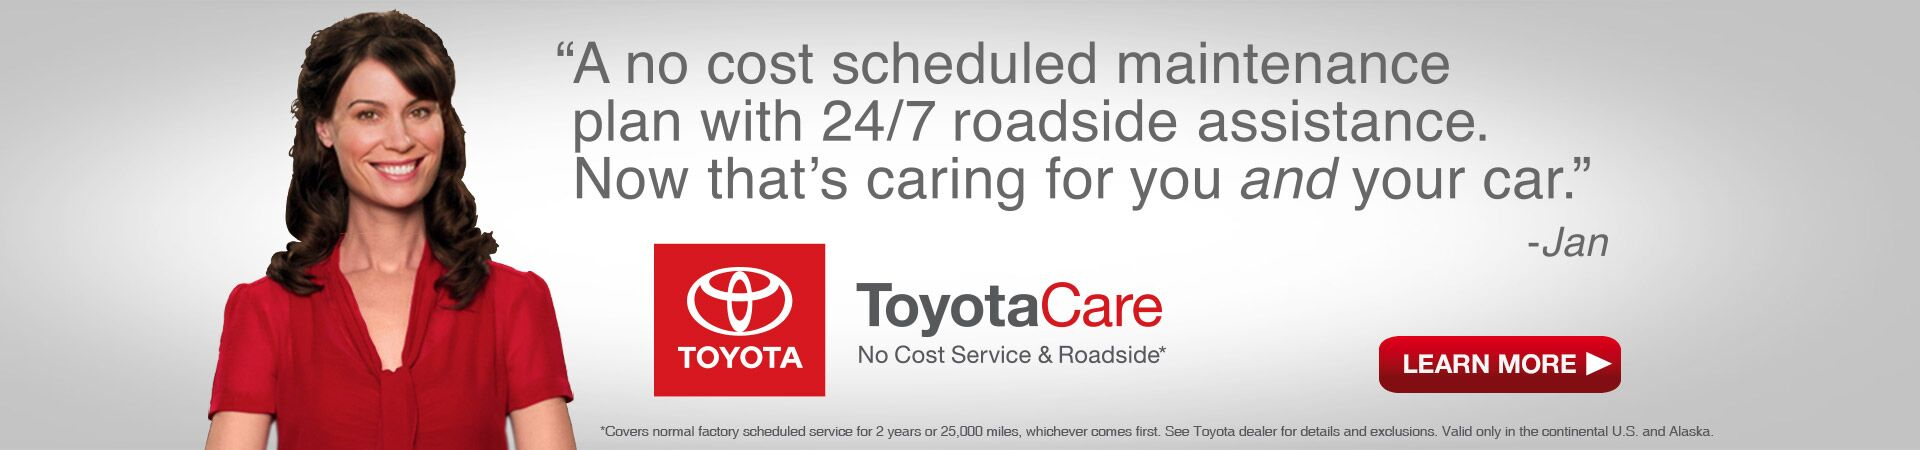 Learn More About ToyotaCare.